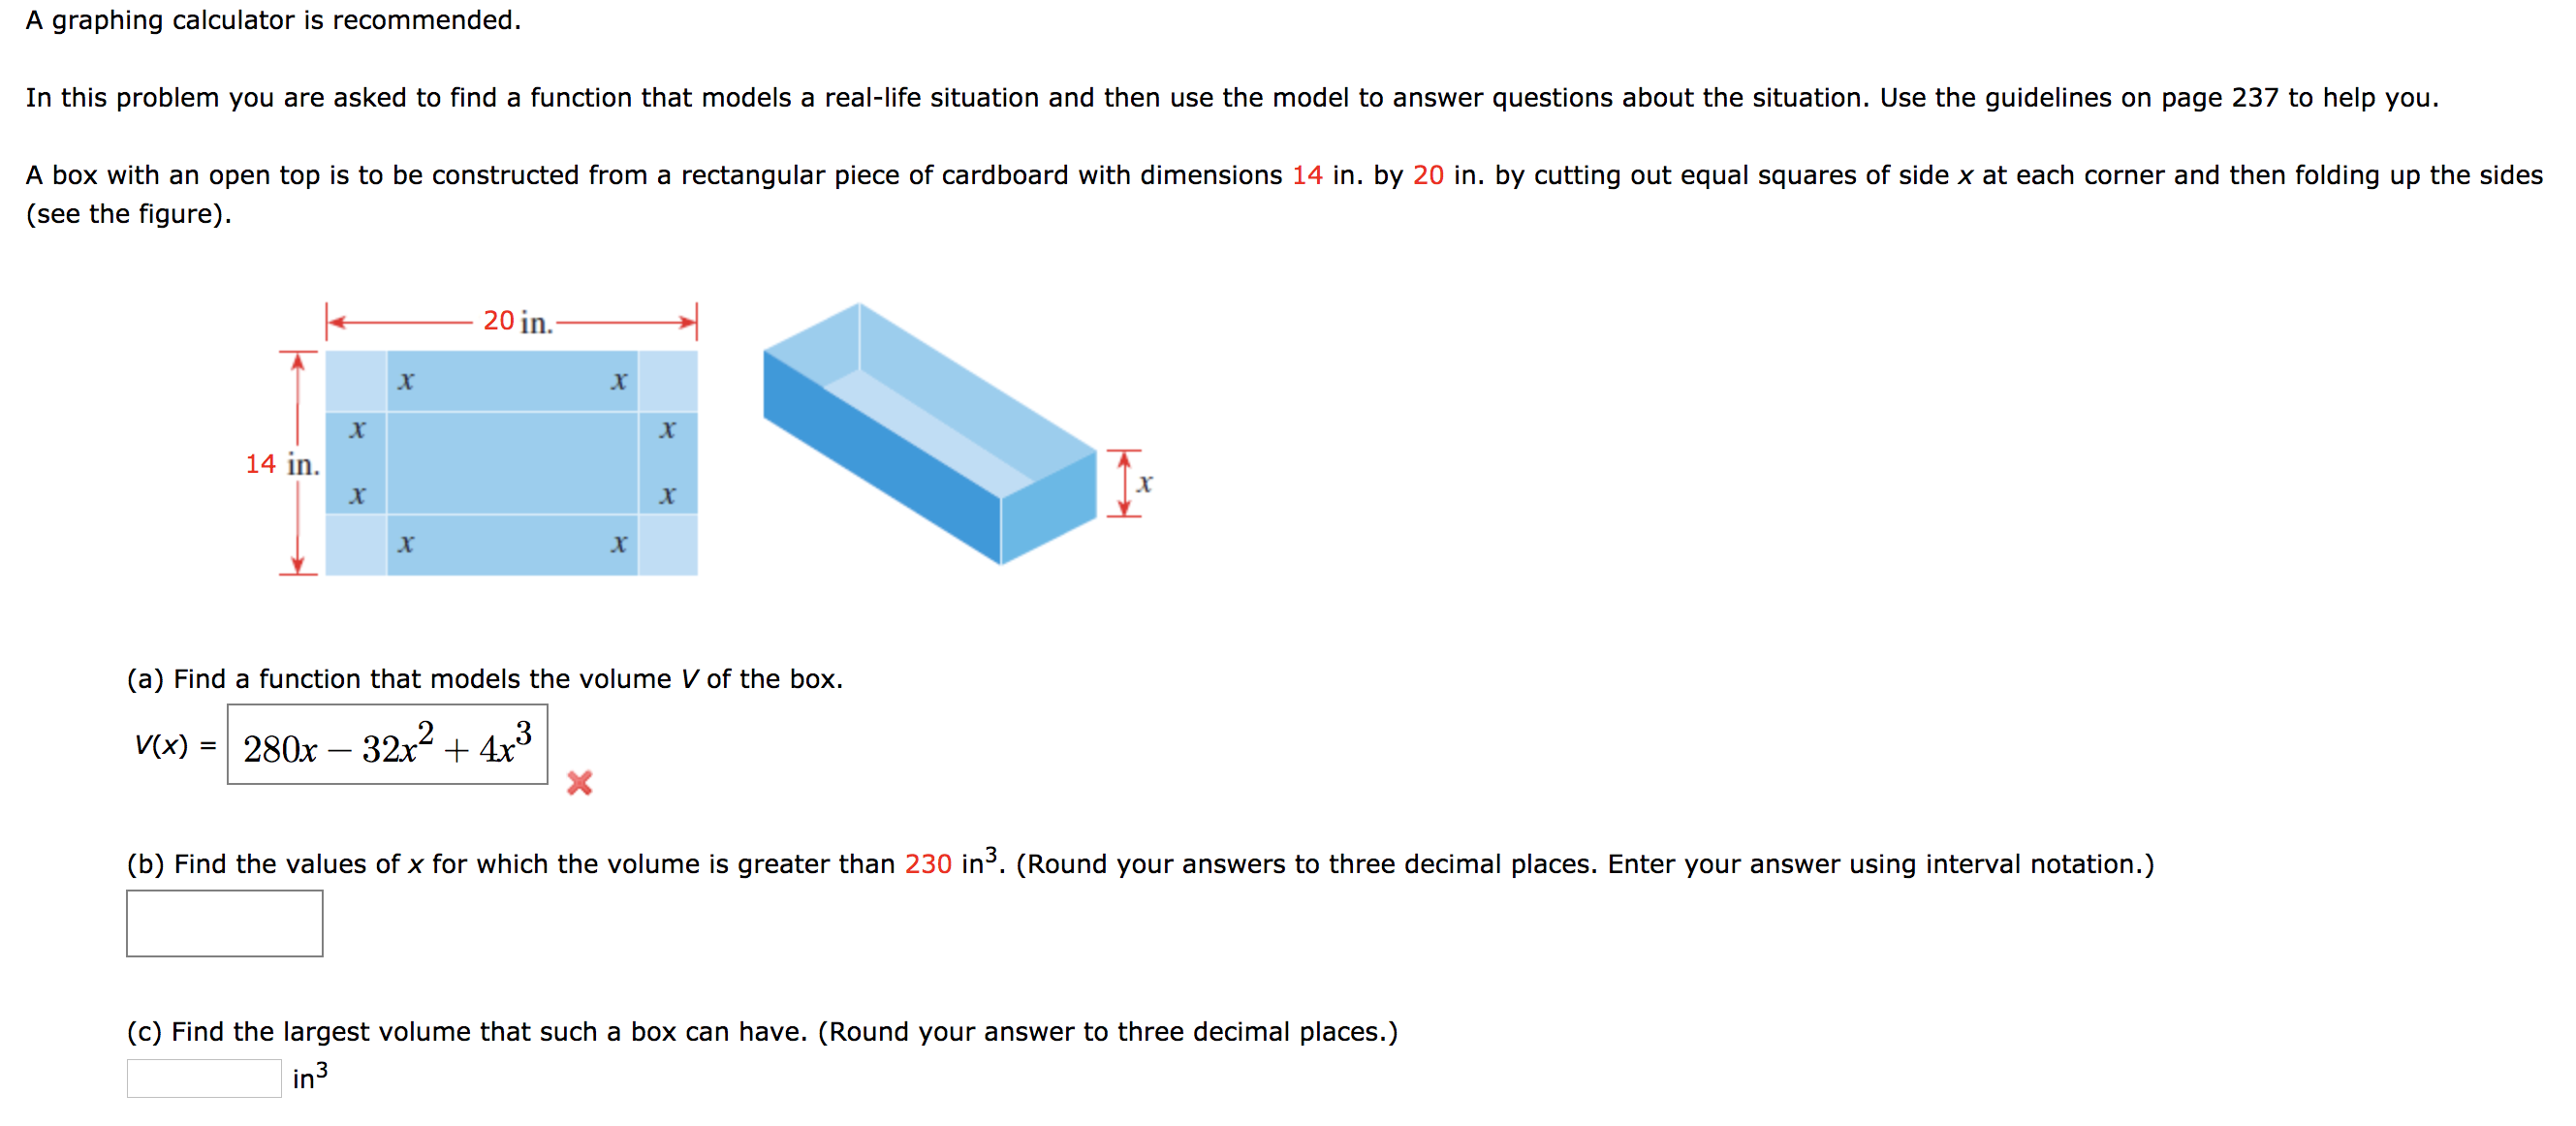 A graphing calculator is recommended. In this problem you are asked to find a function that models a real-life situation and then use the model to answer questions about the situation. Use the guidelines on page 237 to help you. A box with an open top is to be constructed from a rectangular piece of cardboard with dimensions 14 in. by 20 in. by cutting out equal squares of side x at each corner and then folding up the sides (see the figure) 20 in. х х х 14 in х X X (a) Find a function that models the volume V of the box 280x 32x24x3 X V(x) (b) Find the values of x for which the volume is greater than 230 in3. (Round your answers to three decimal places. Enter your answer using interval notation.) (c) Find the largest volume that such a box can have. (Round your answer to three decimal places.) in3